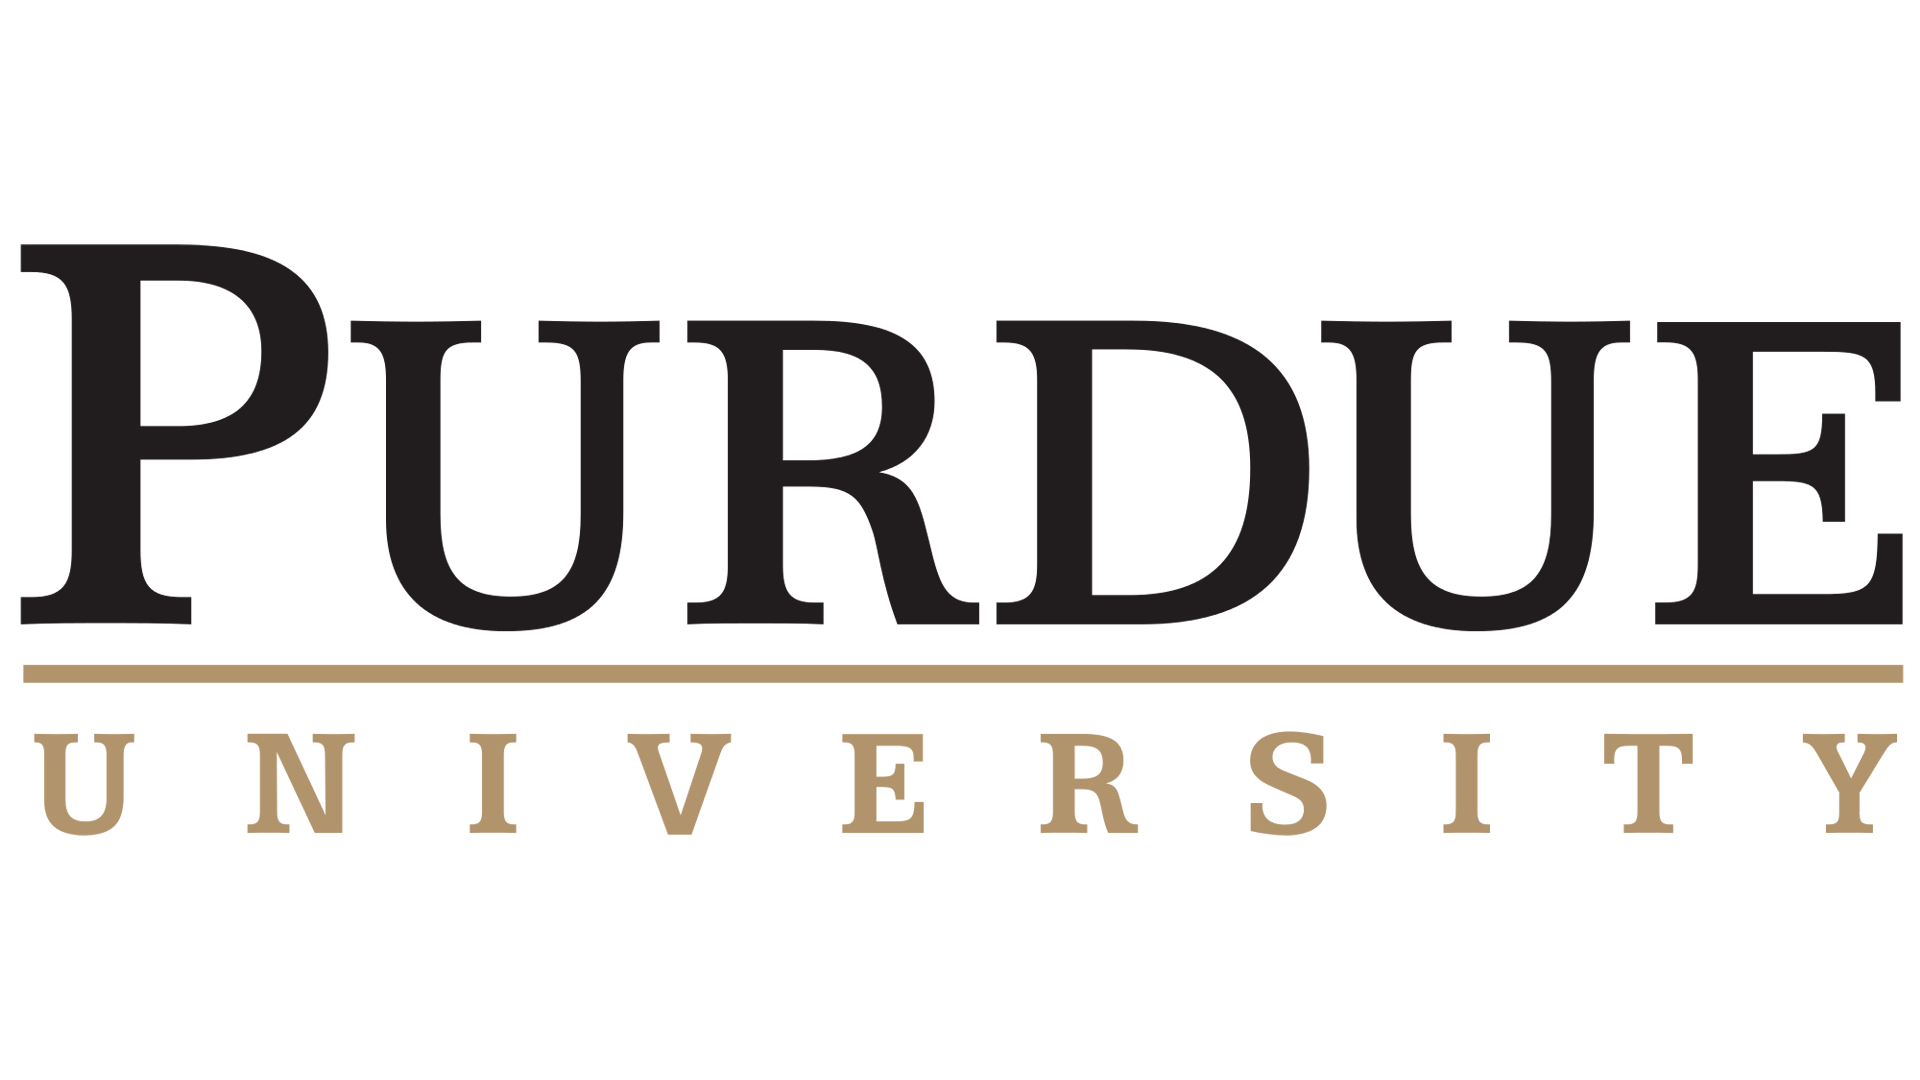 Purdue logo png. University symbol meaning history